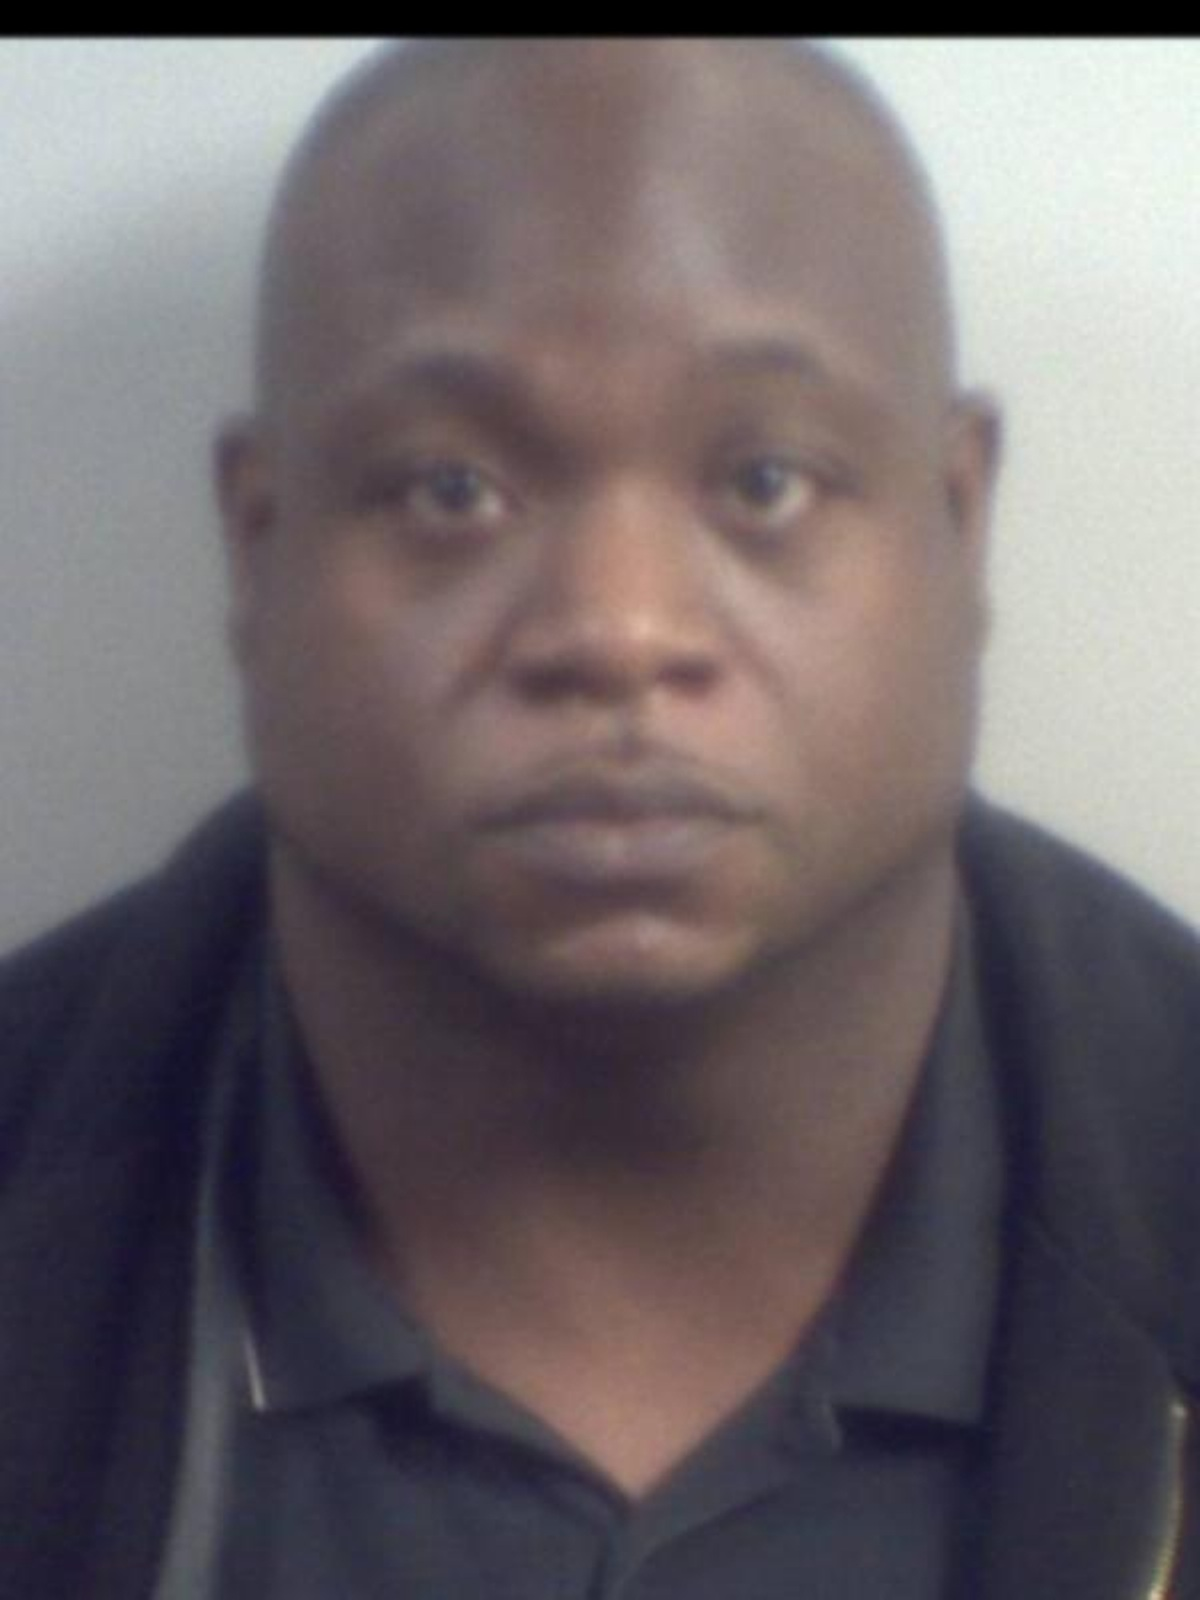 Gravesend bouncers jailed for 'sickening' attack after ejecting two men at The Grove nightclub